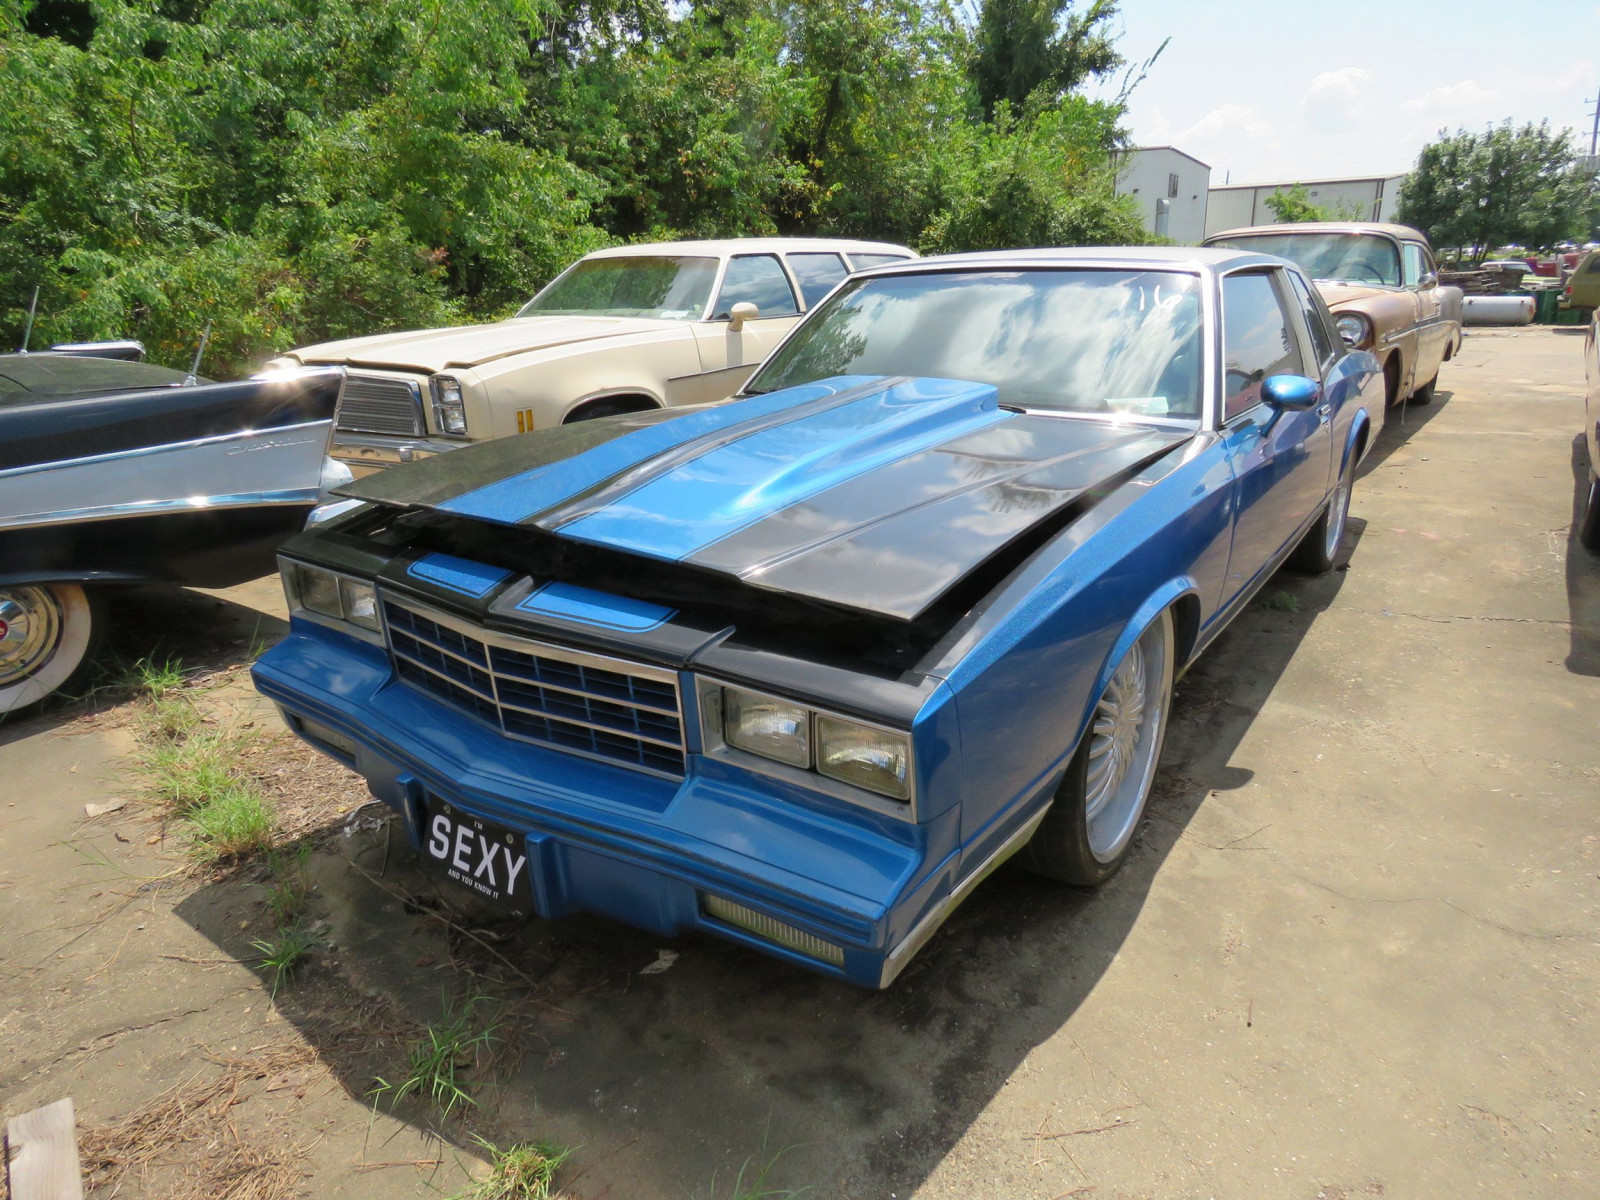 1984 Chevrolet Monte Carlo Custom Project - Image 1